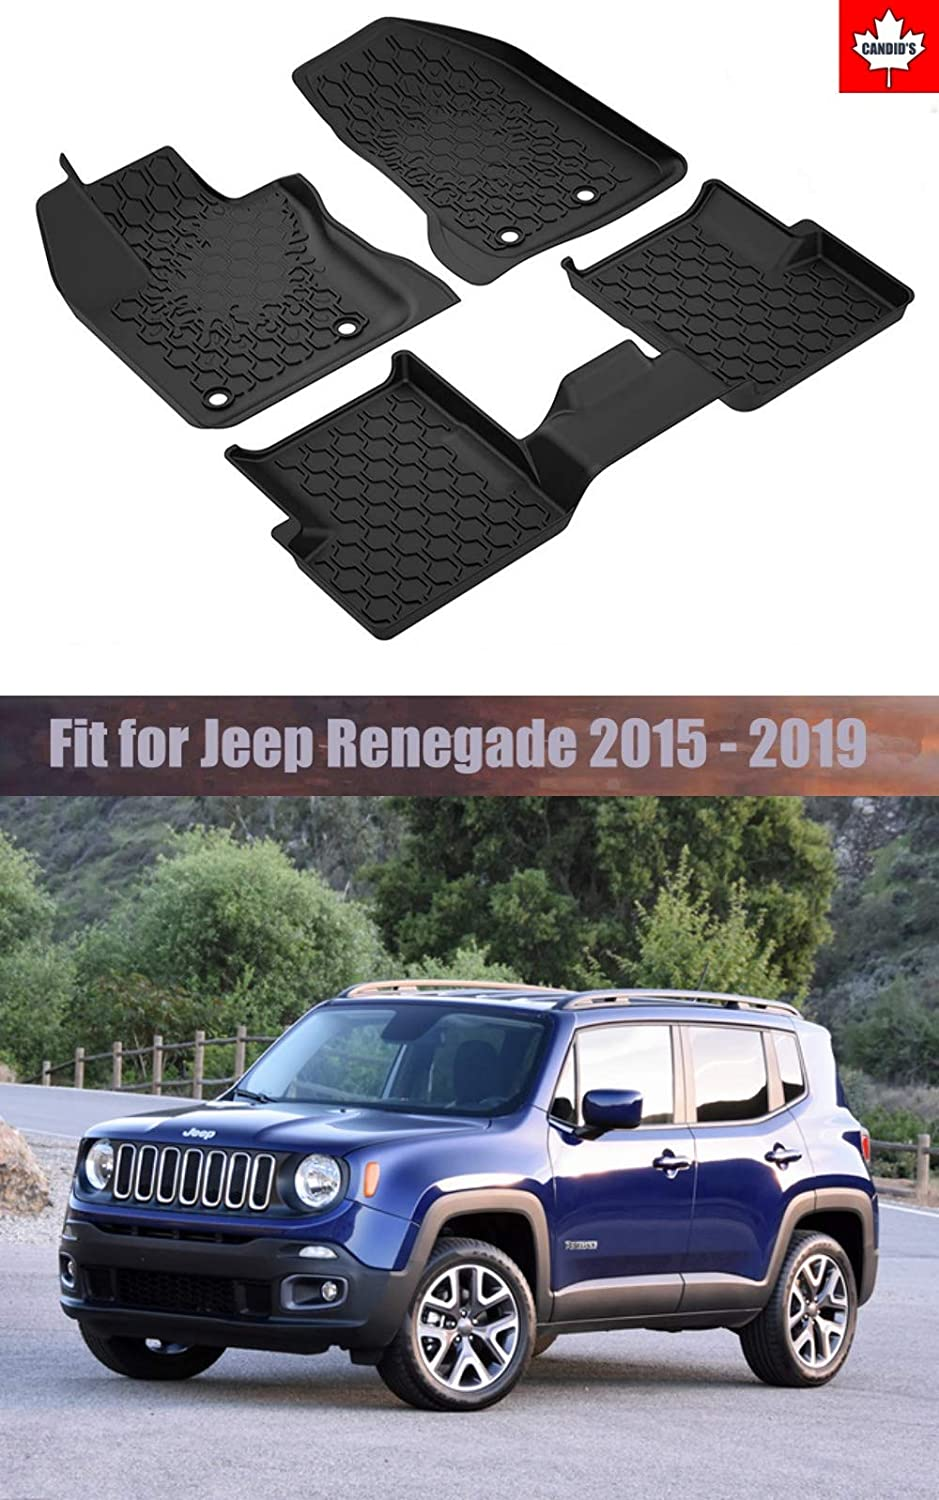 Cargo mat for Jeep Renegade 2015-2019 2015-2019 All Weather Guard Mat TPE Slush Liners